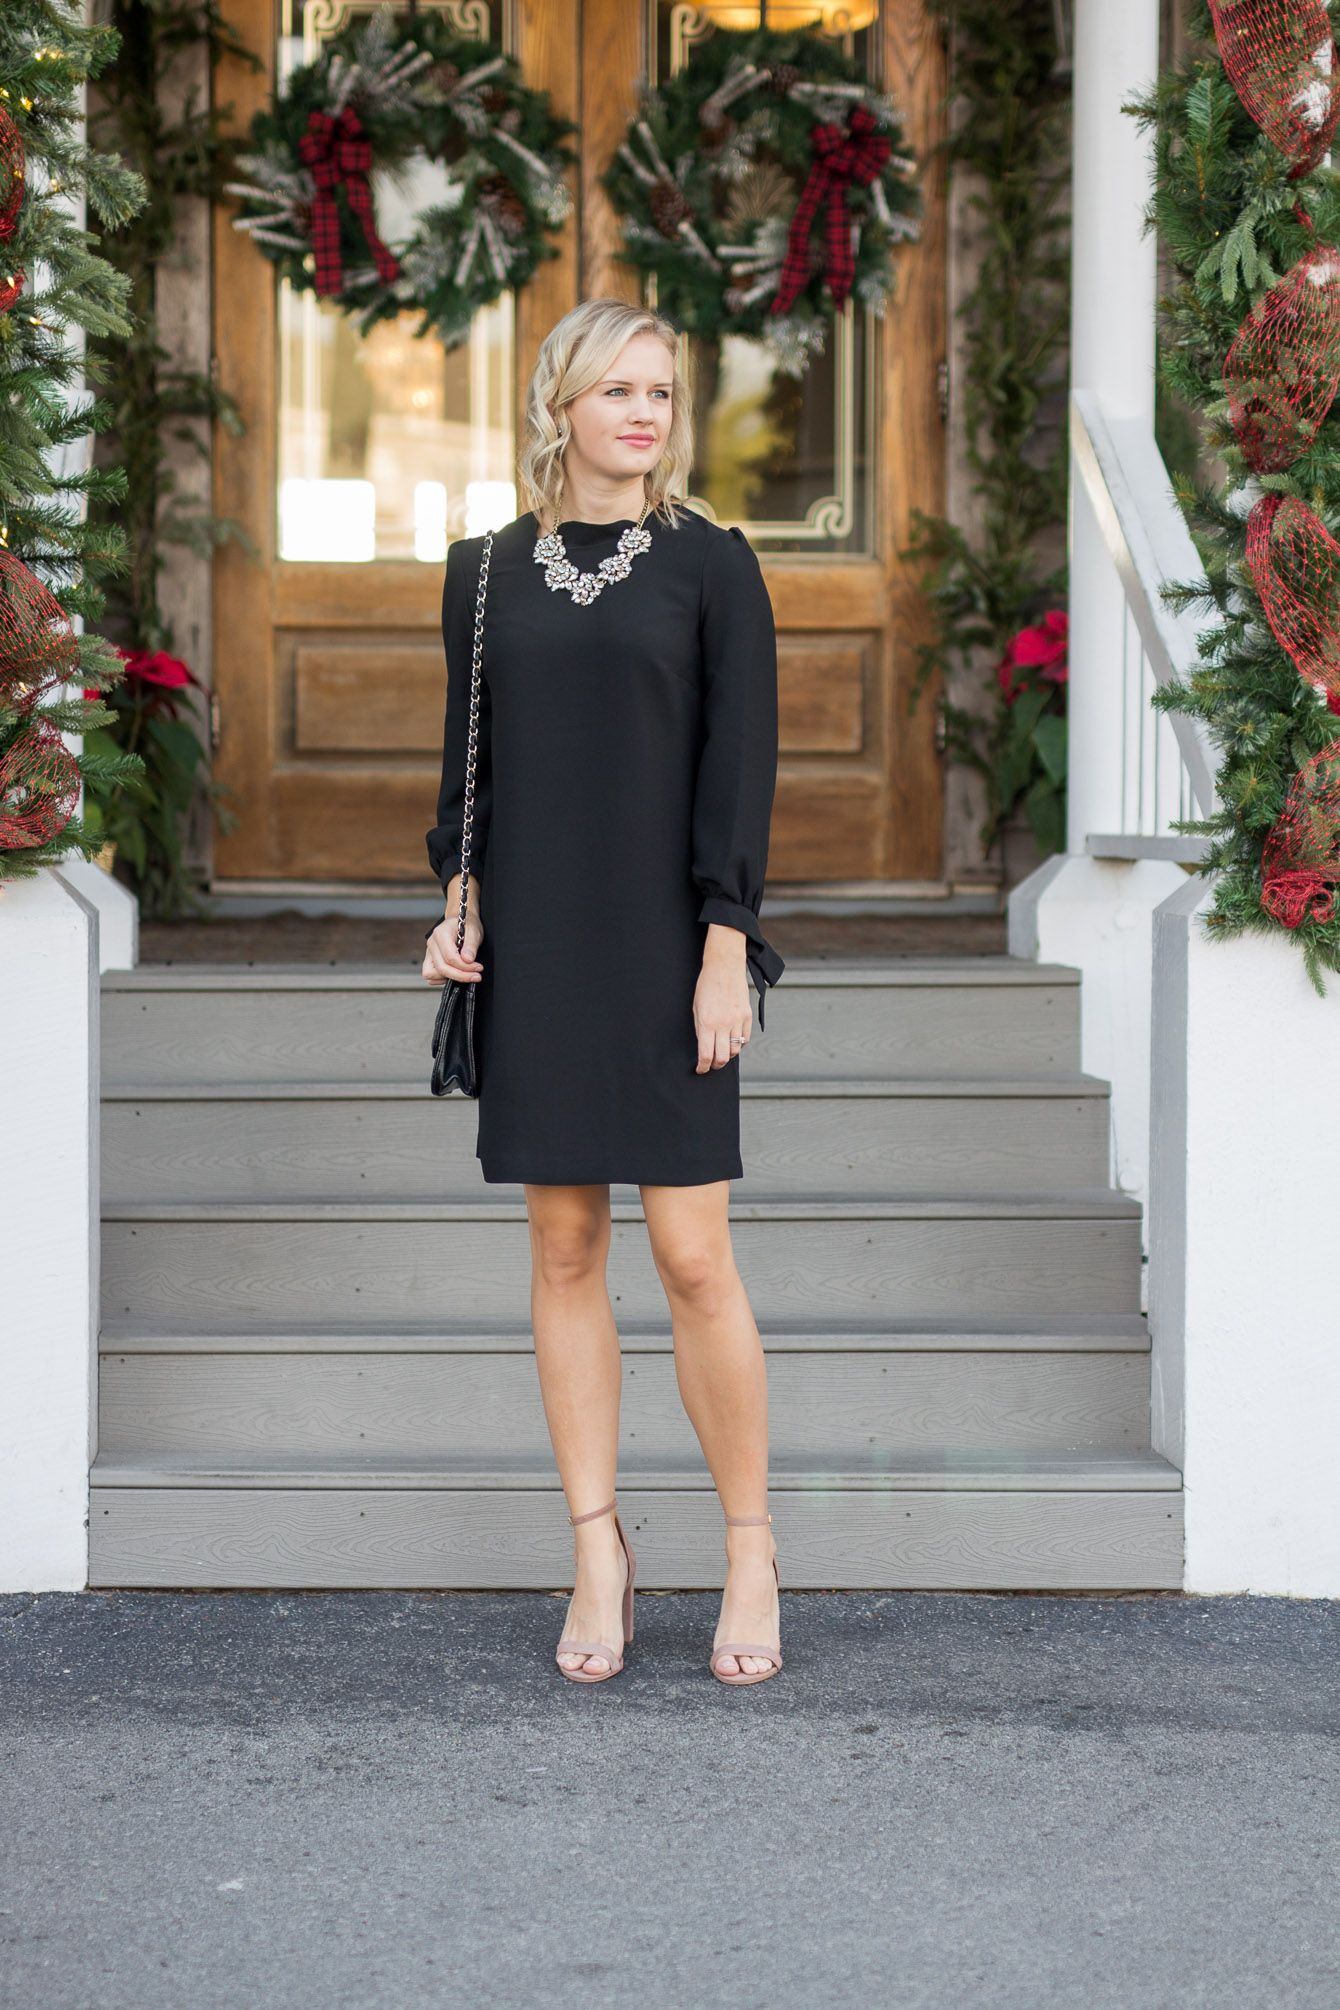 17 Little Black Dresses That Are Perfect For Holiday Parties Treats And Trends Dresses Little Black Dress Black Dress [ 2010 x 1340 Pixel ]